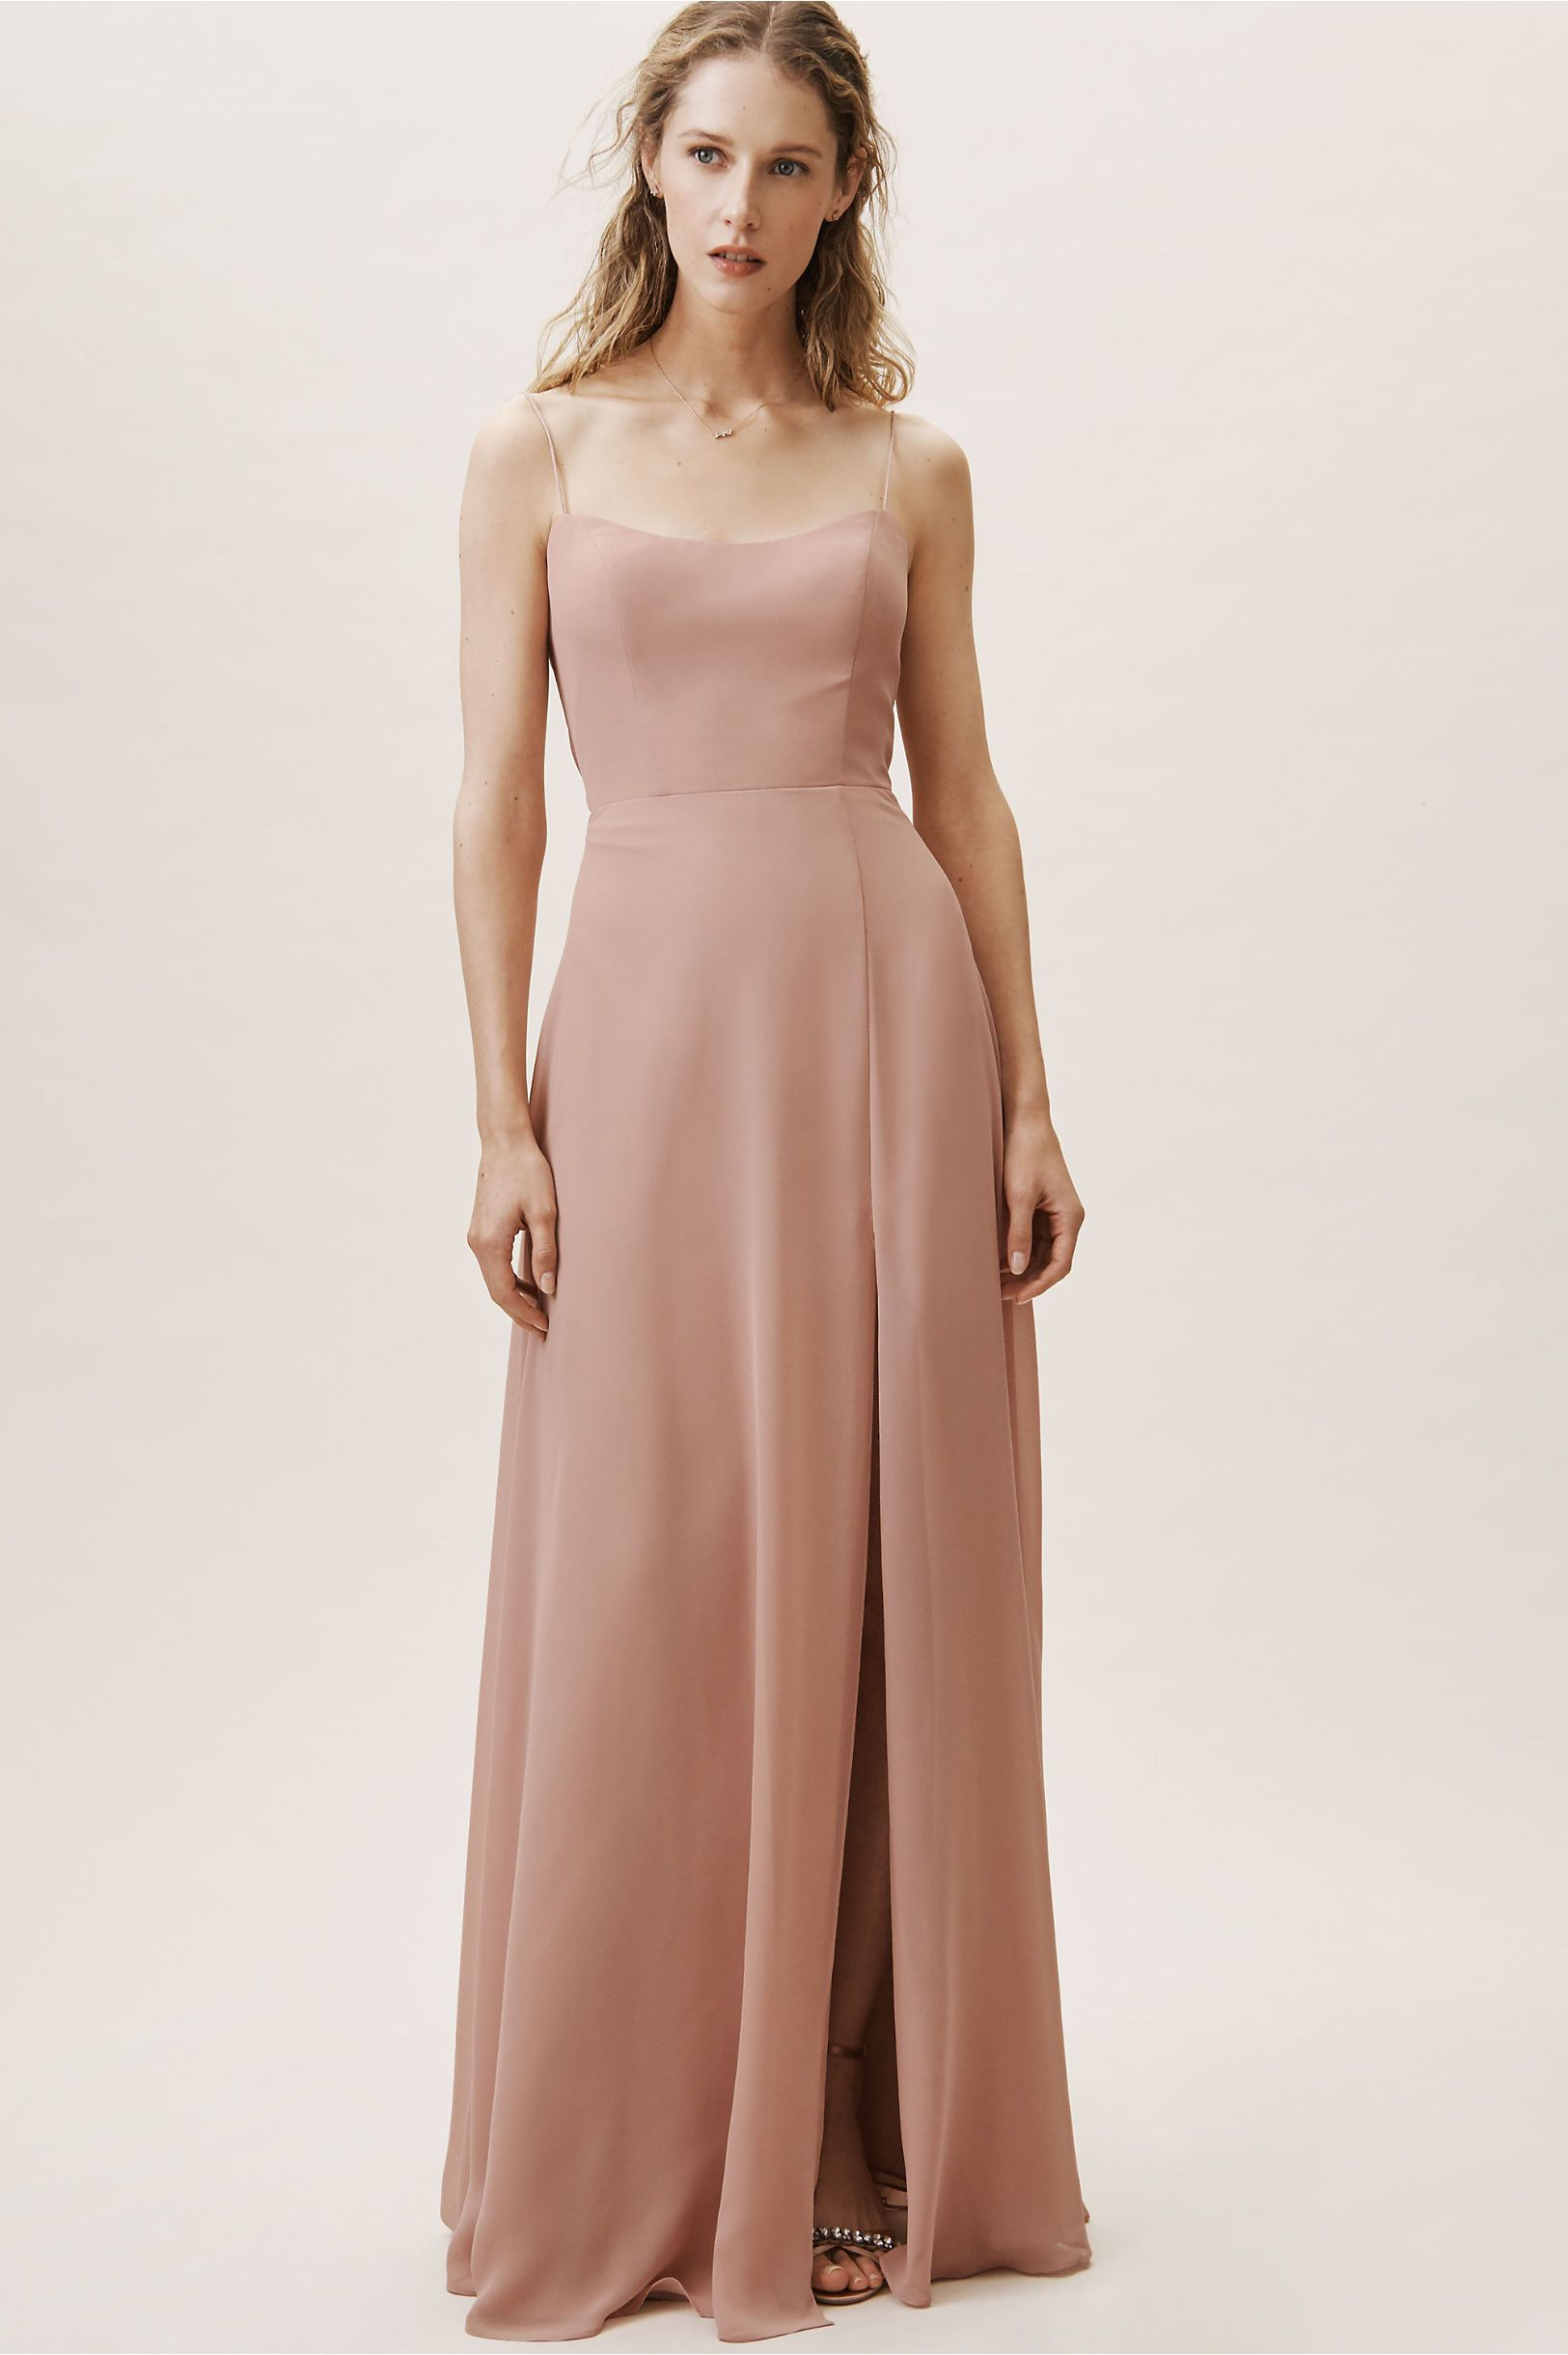 4fe0b5c1b8b Kiara Dress Whipped Apricot in Bridesmaids   Bridal Party